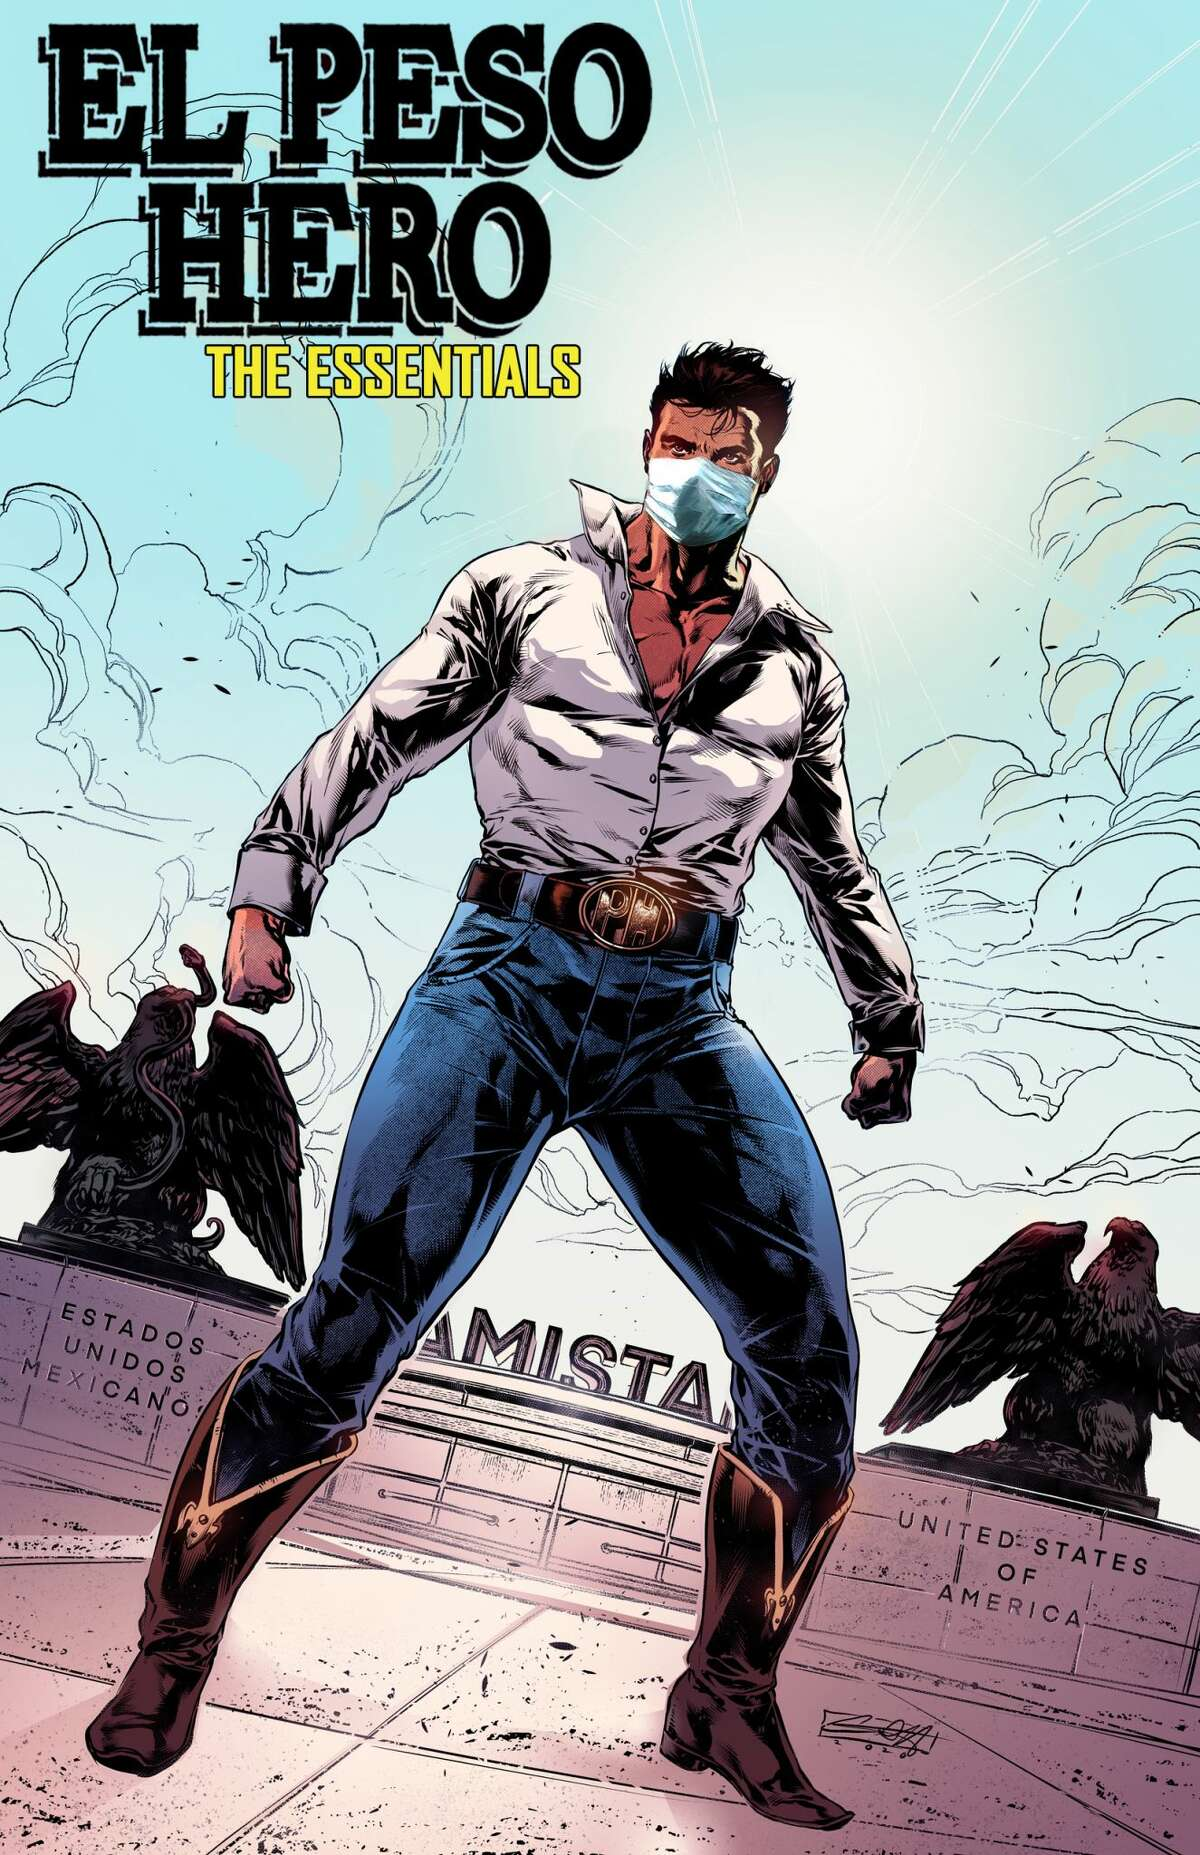 Rodriguez's latest comic book is titled